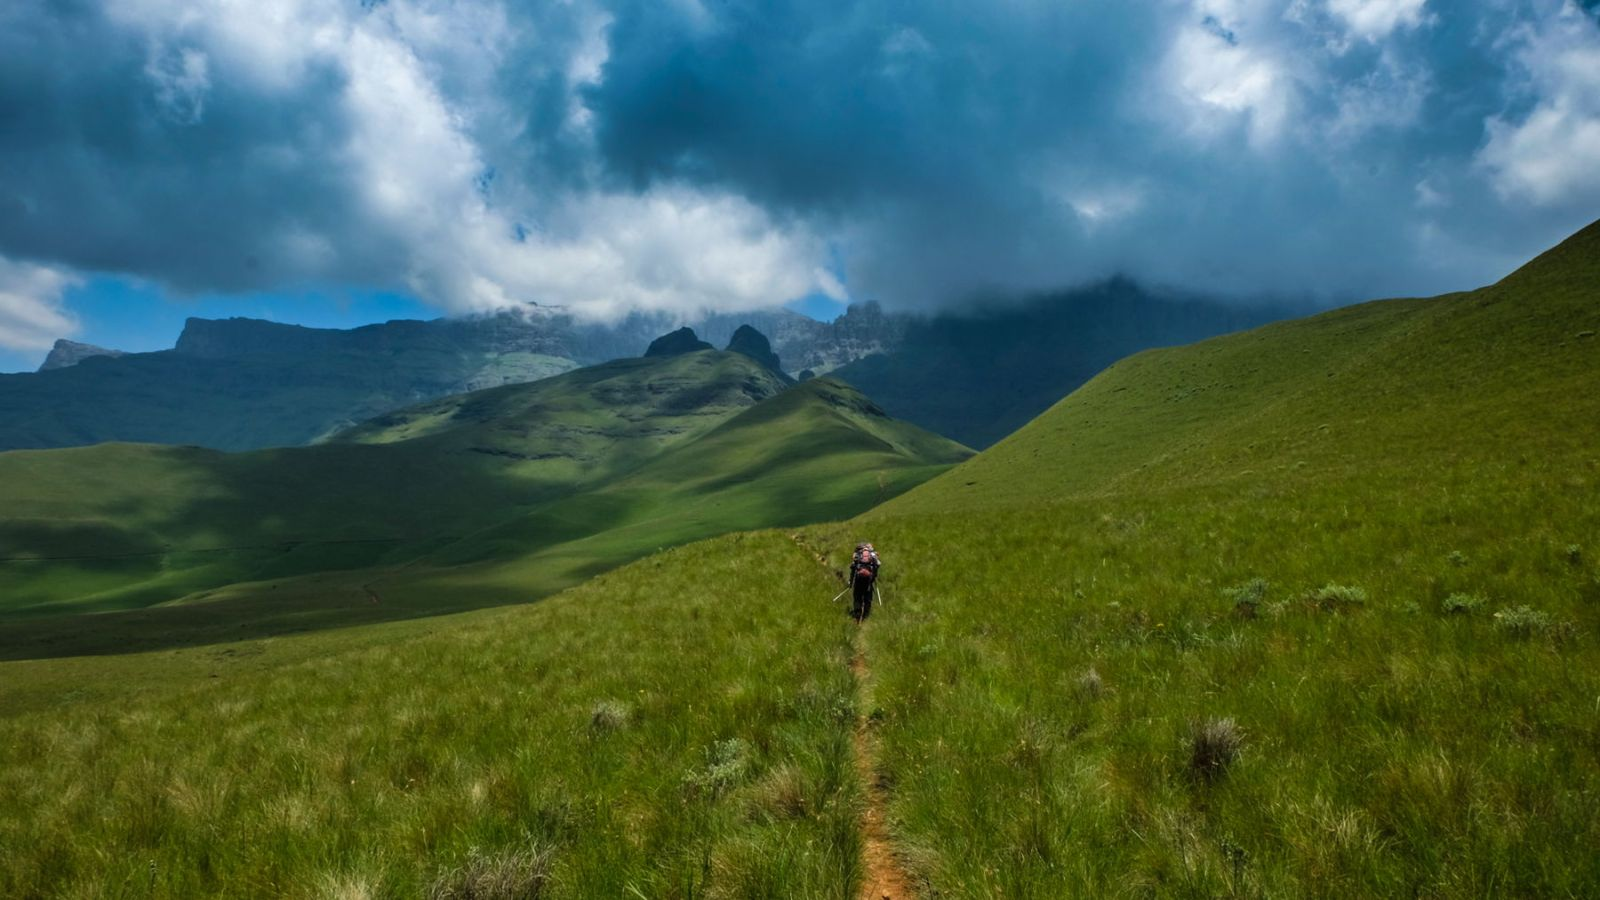 photo of the mountains in the drakensberg with a hiker in the distance